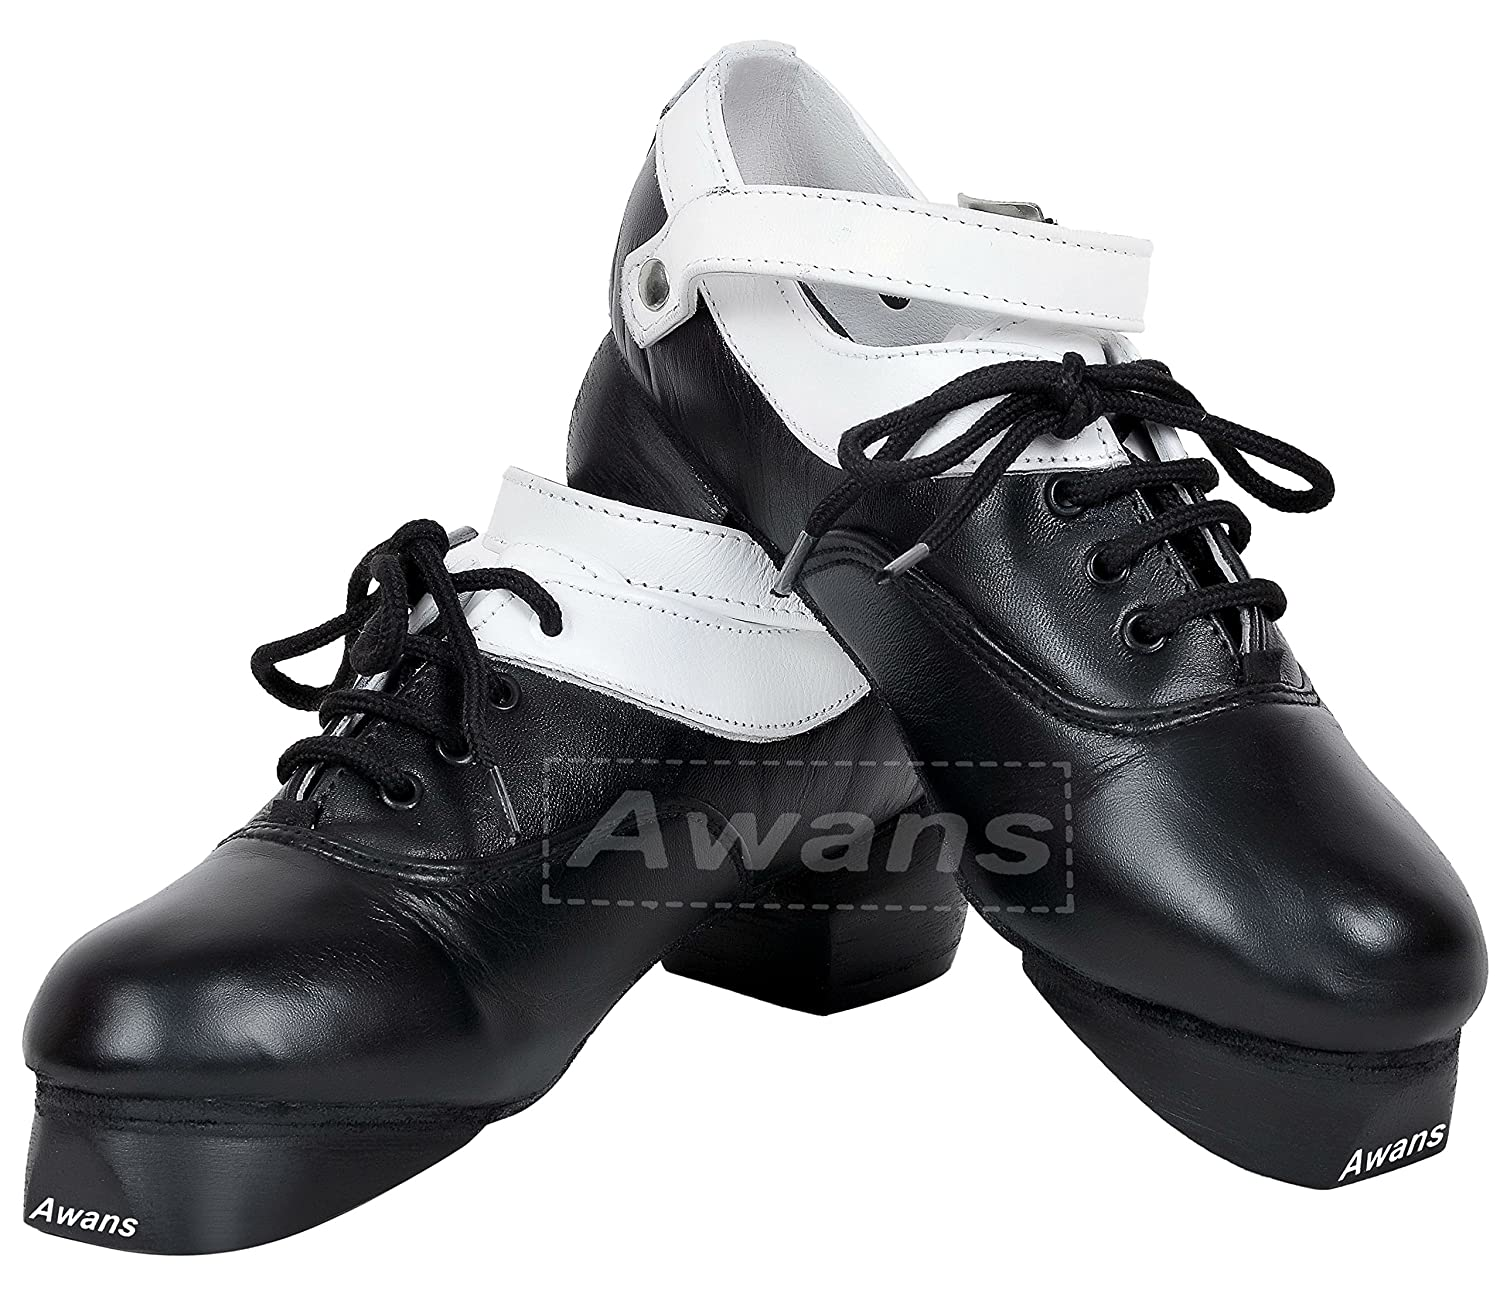 Awans Irish Dancing Heavy Shoes, Loud, Flexible,Soft, New Design White Lining